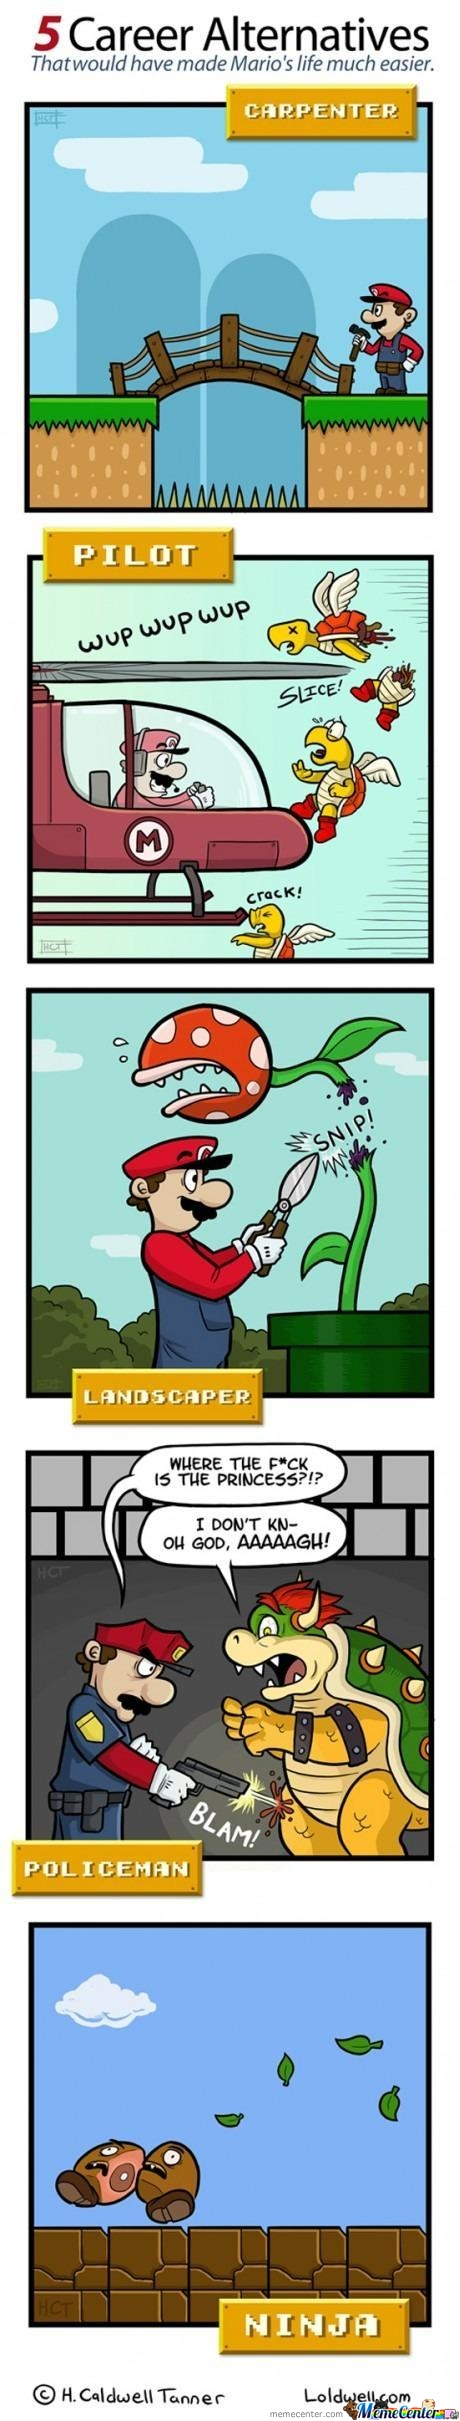 Mario Alternative Jobs